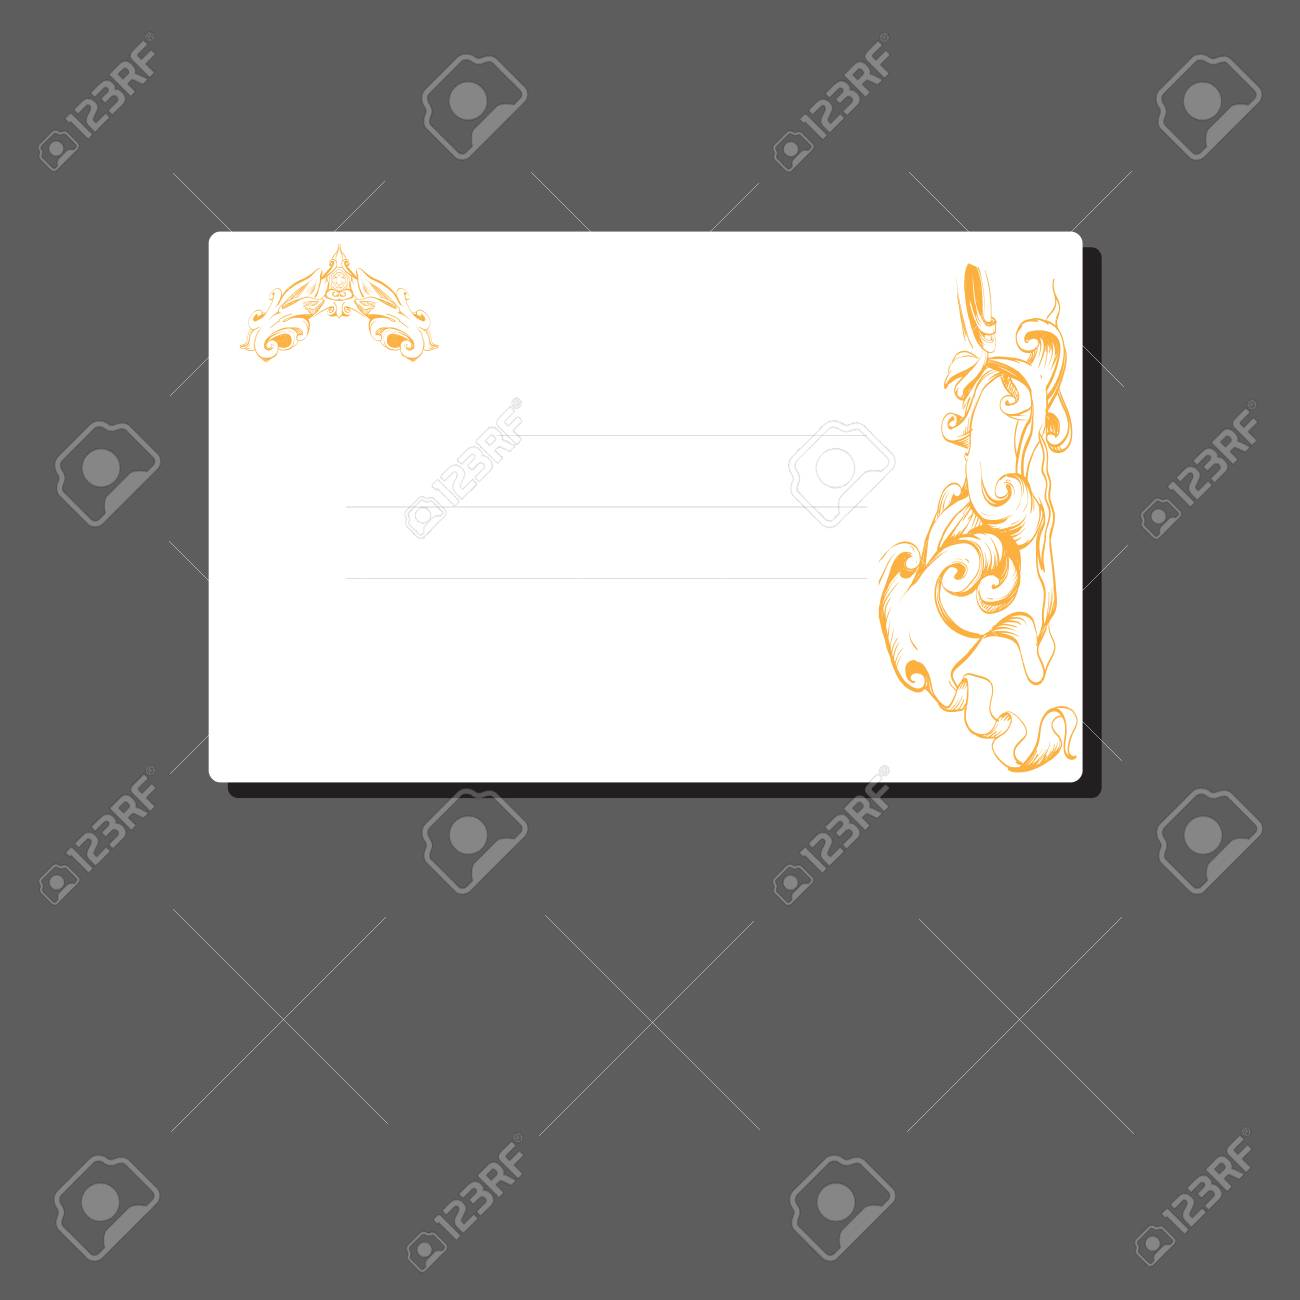 Vector Business Card, Greeting, Frame, Vintage, Vector Template ...